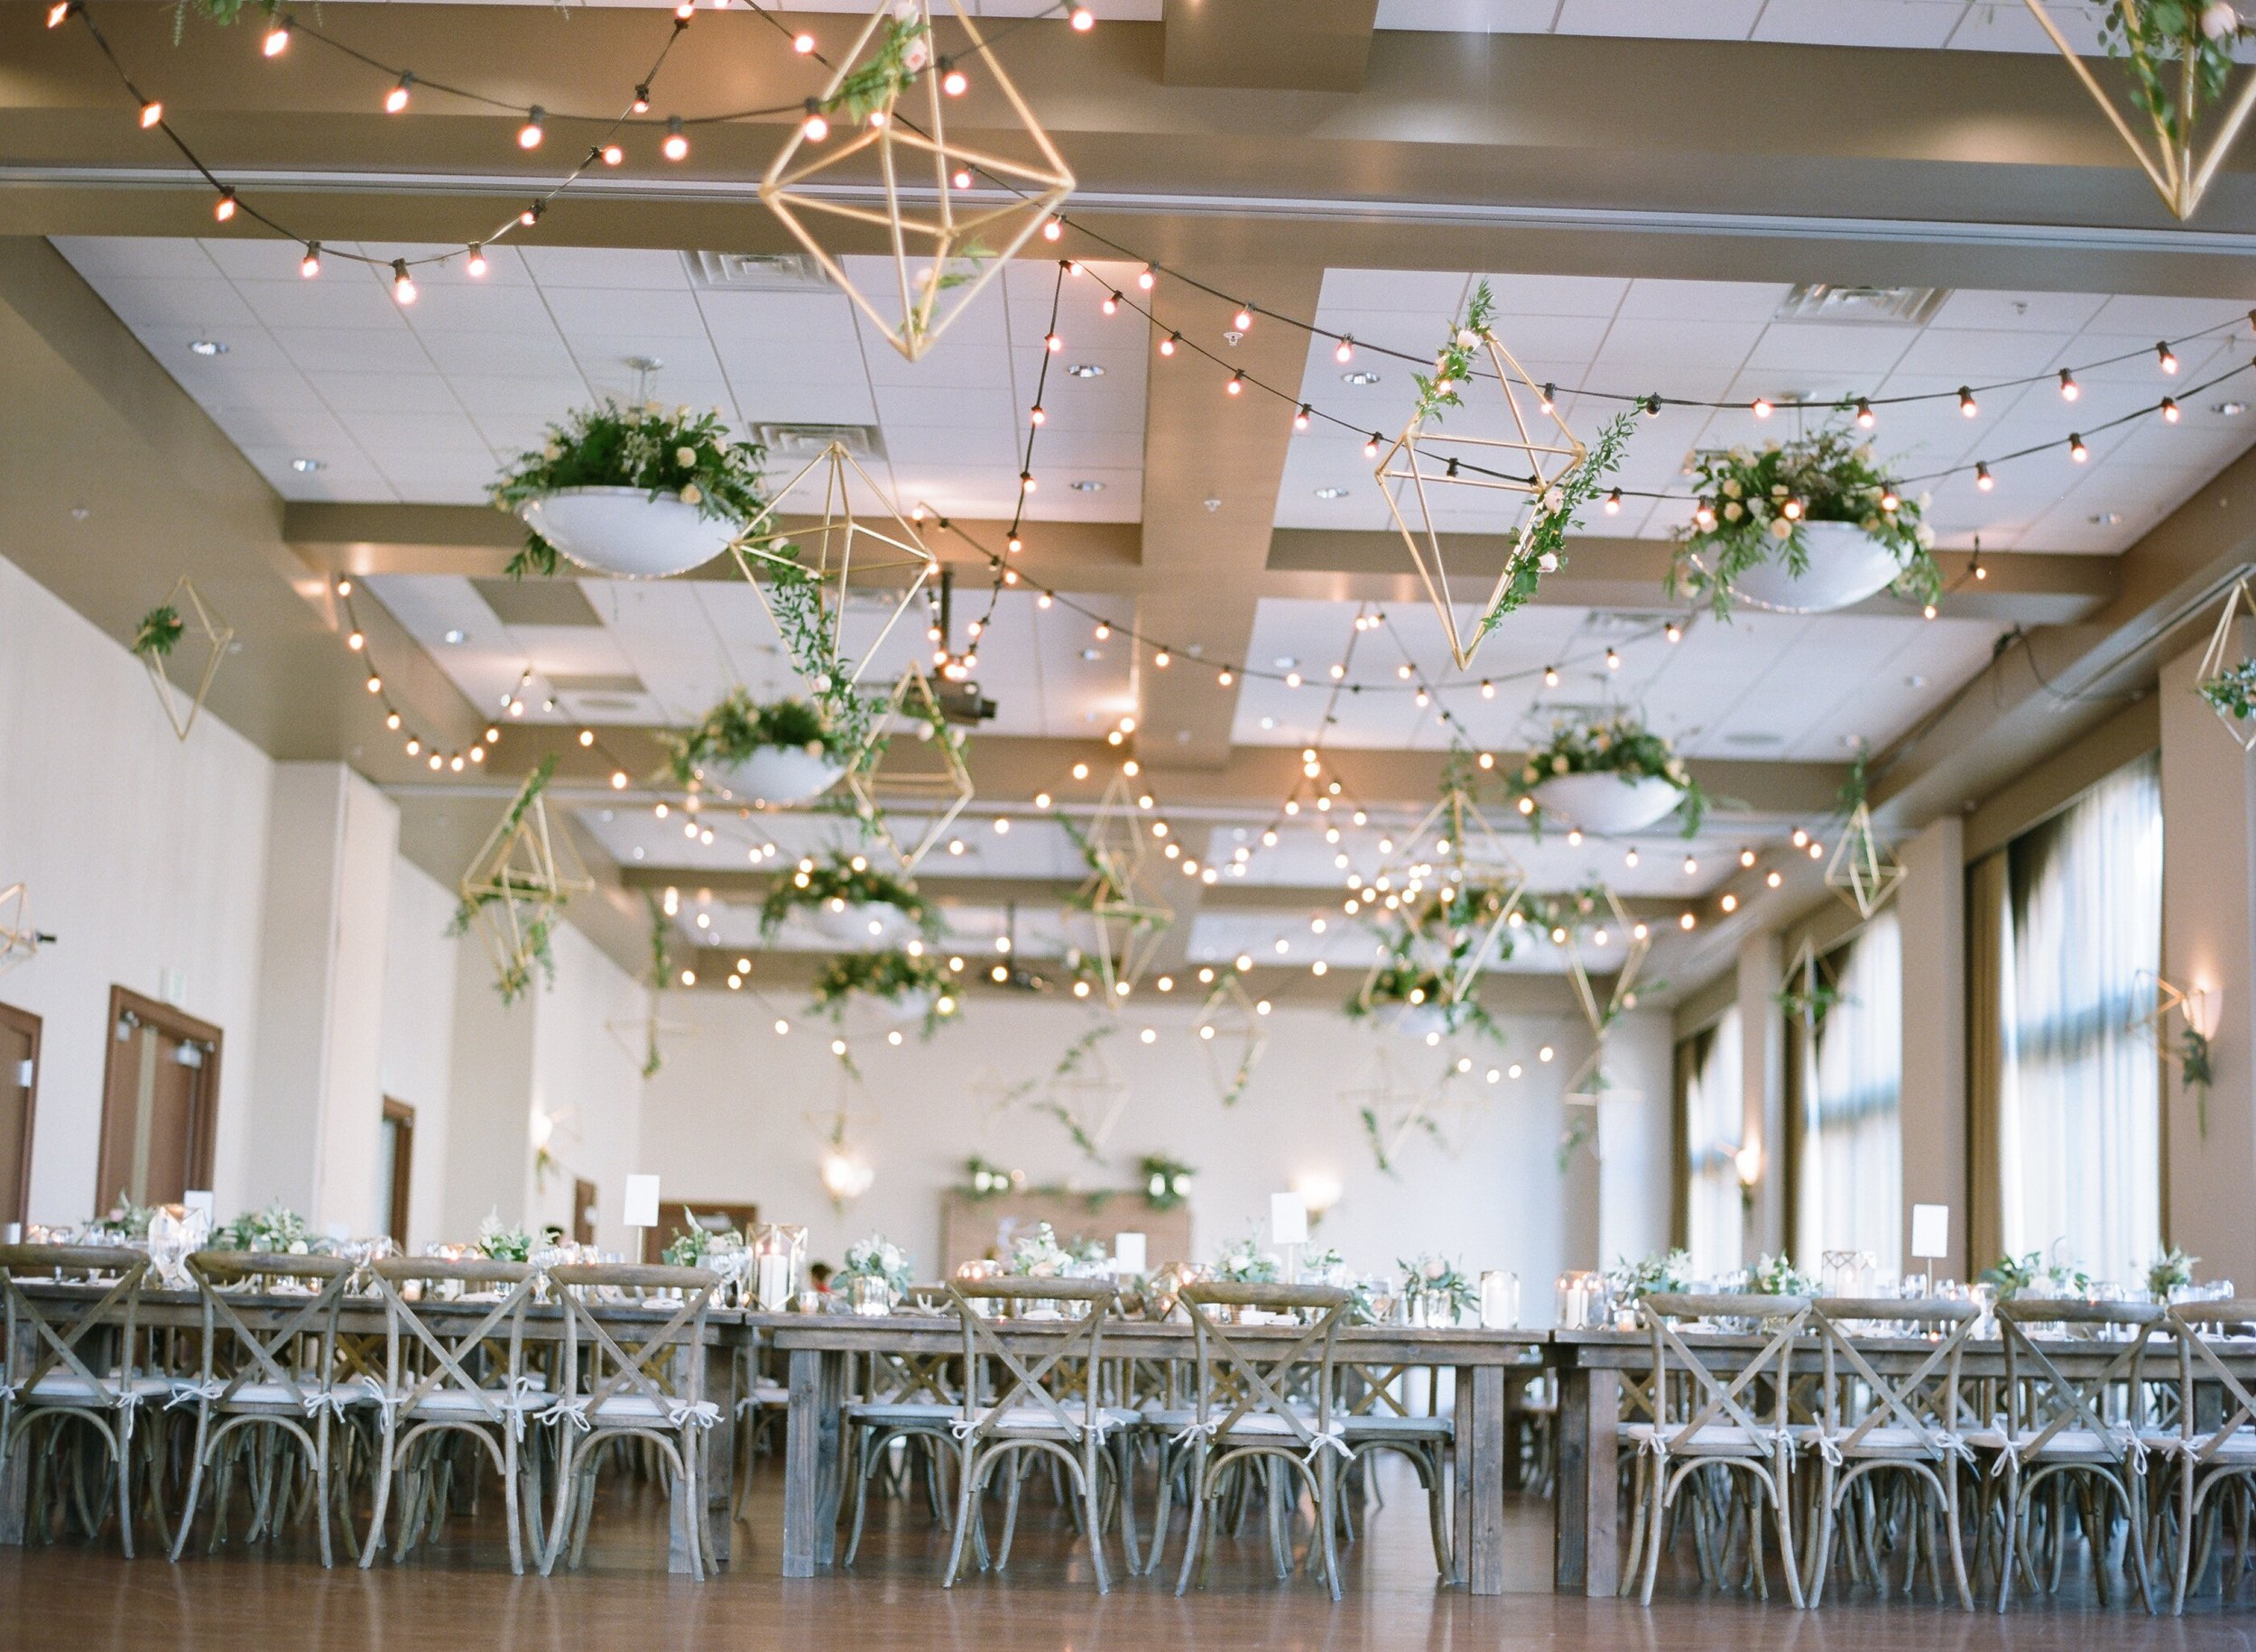 Wedding-Florist-Wisconsin-Weddingplanner-eventplanner.jpg